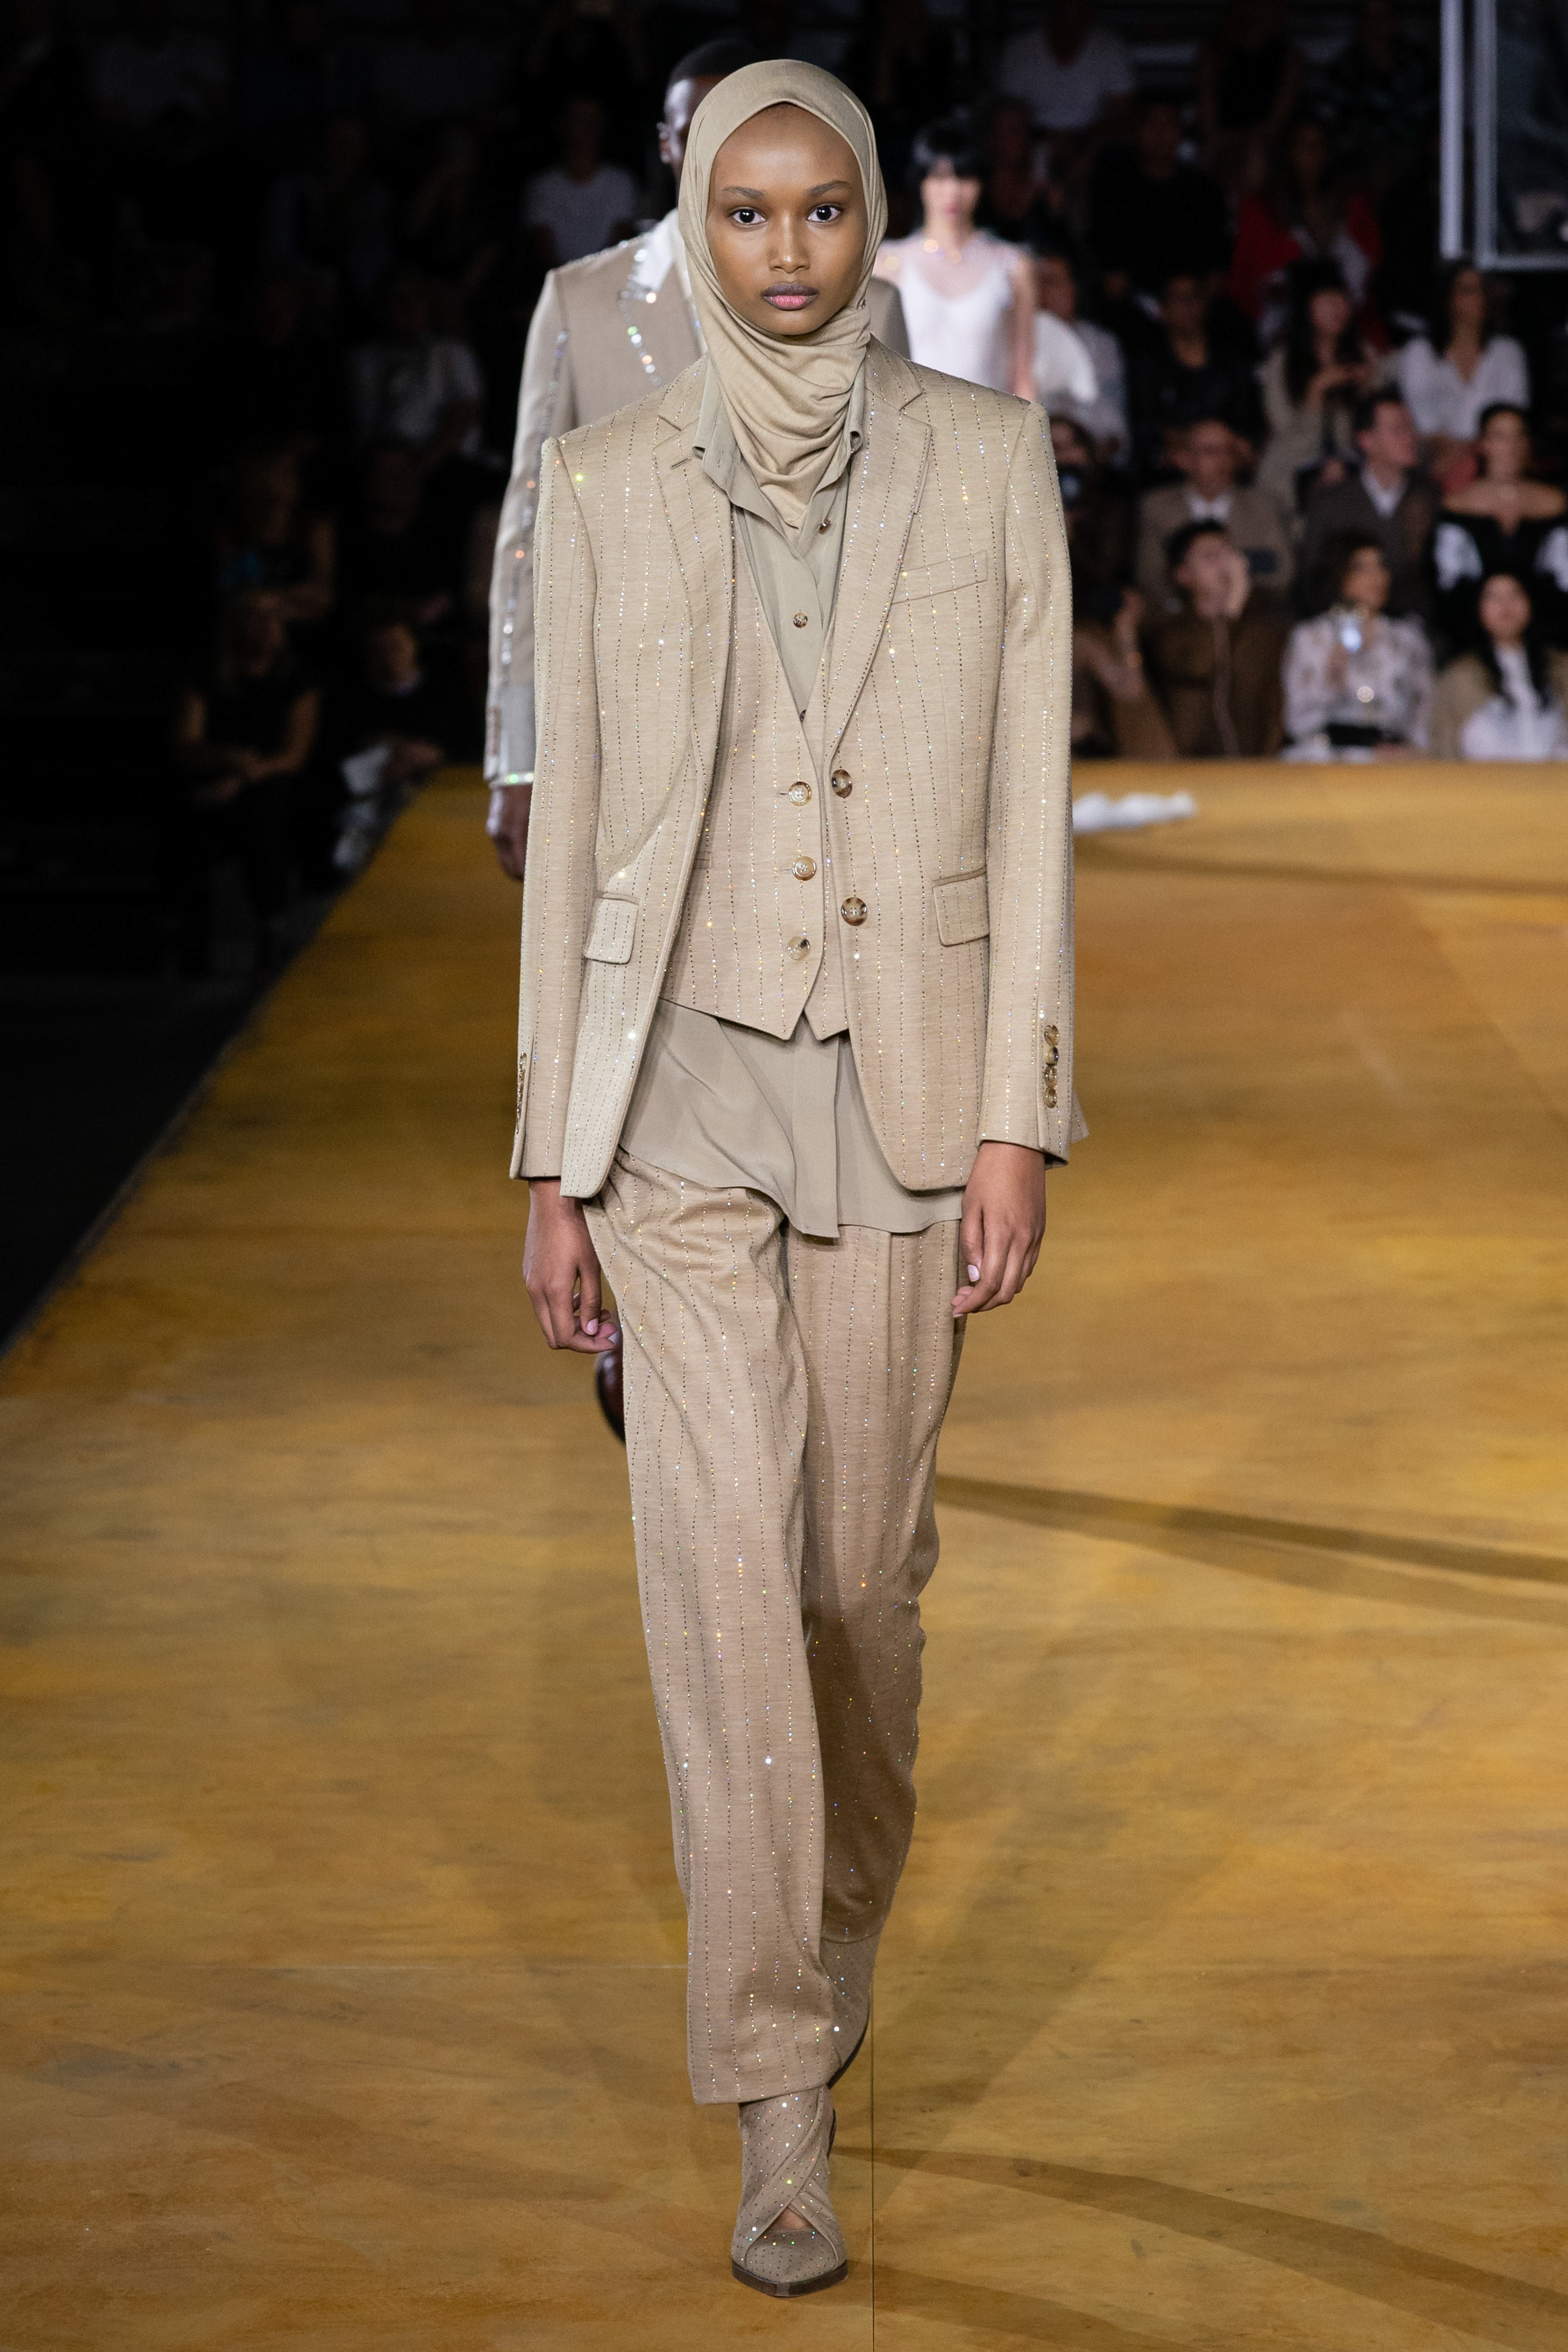 burberry spring summer 21 ready to wear look